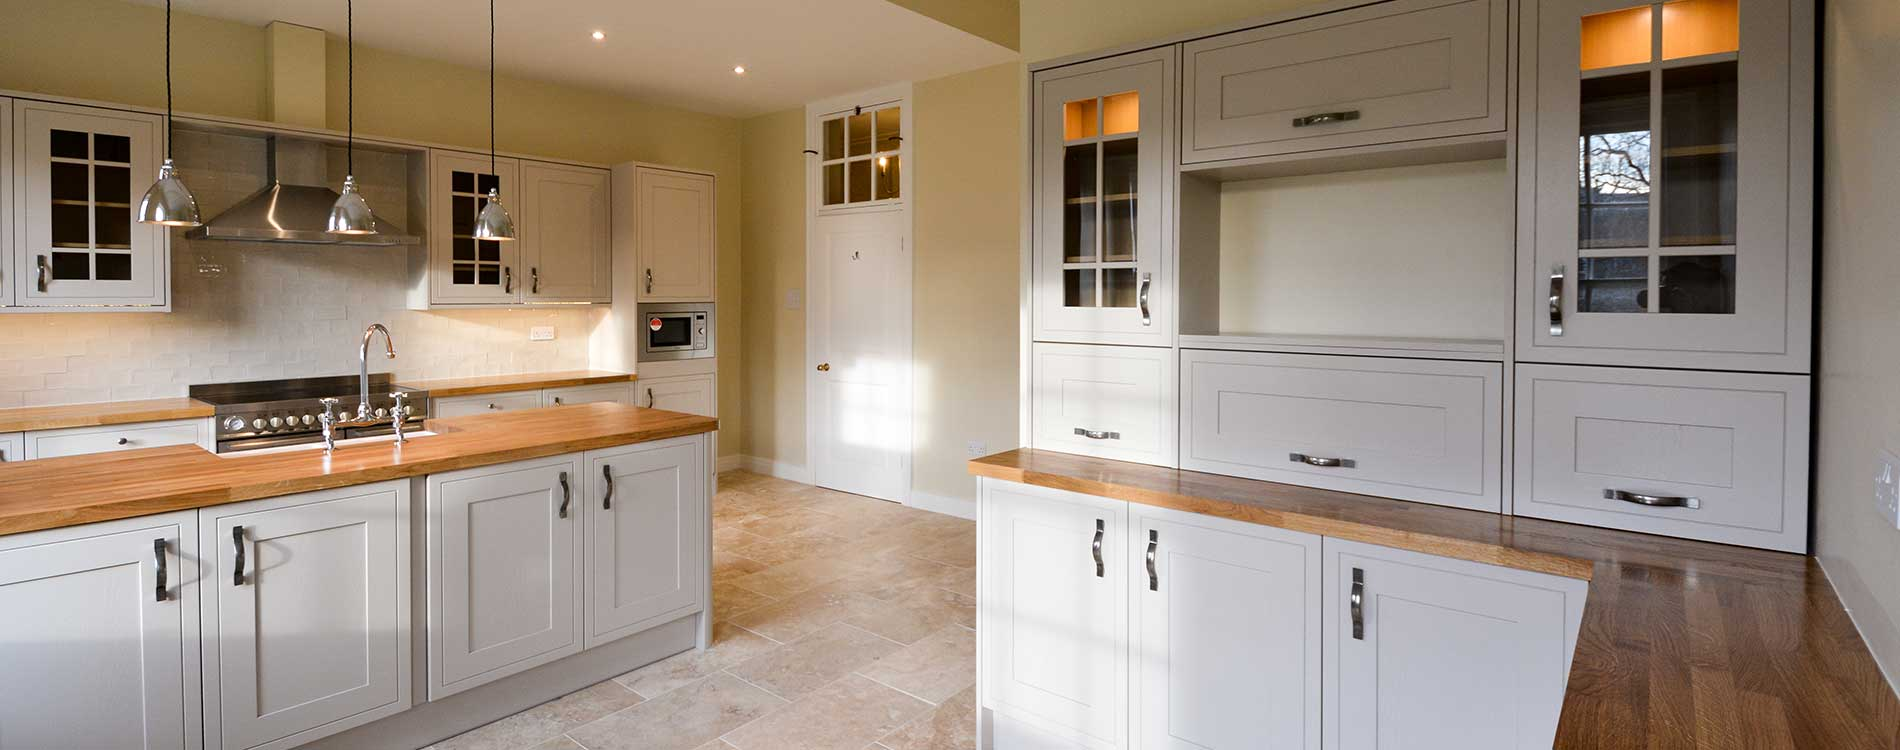 Large open plan kitchen installed as part of refurbishment works